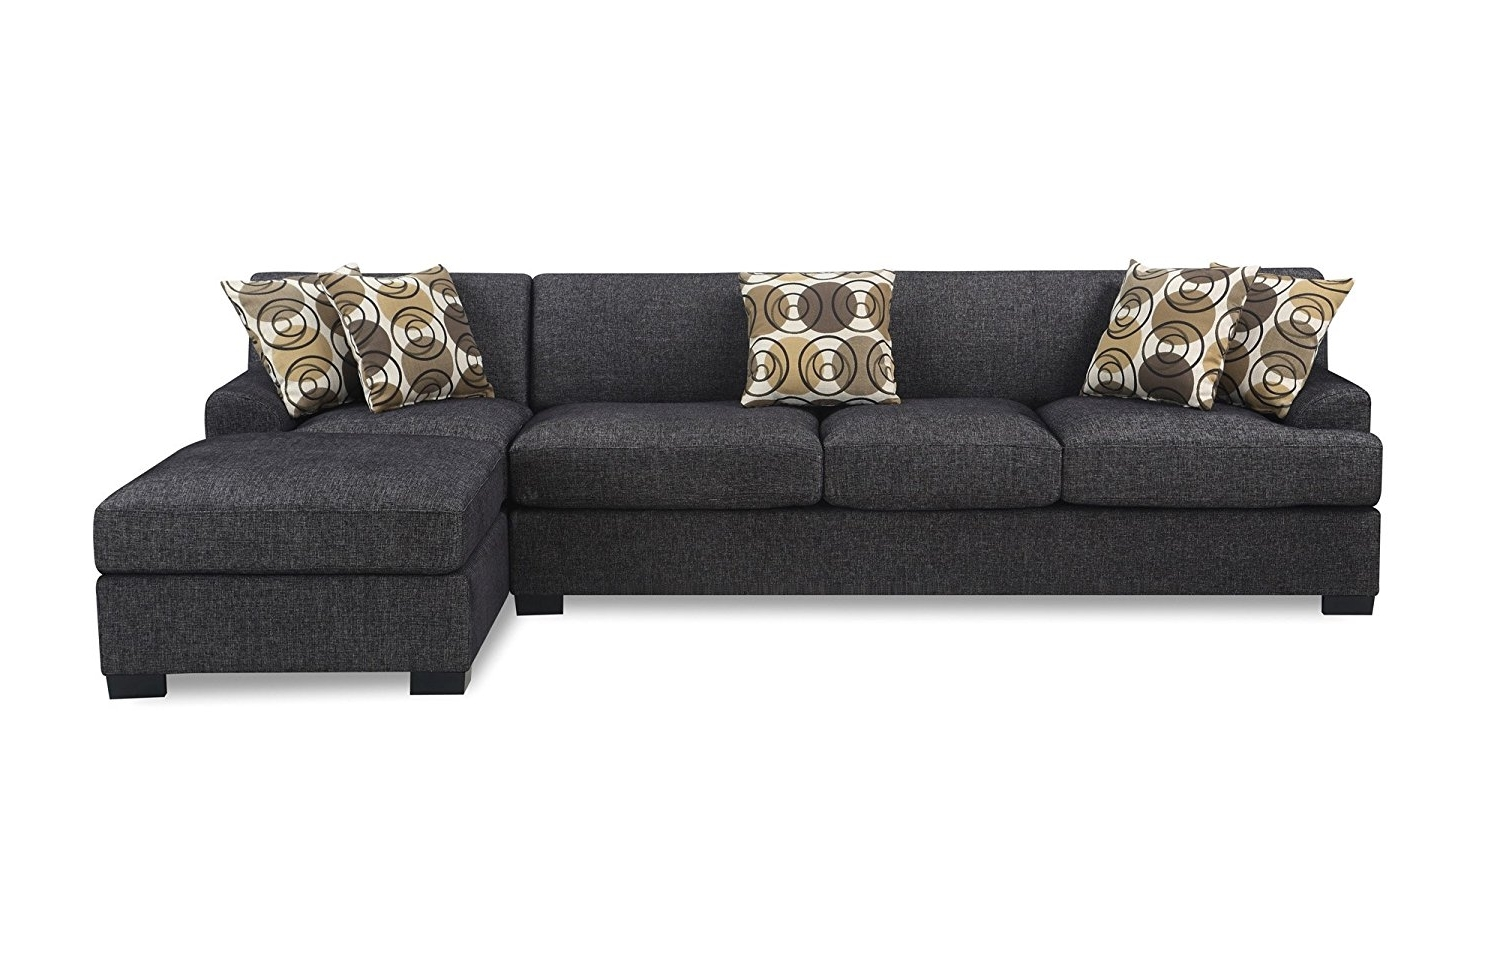 Latest Long Chaise Sofas Within Amazon: Bobkona Poundex Benford Collection Faux Linen Chaise (View 6 of 15)